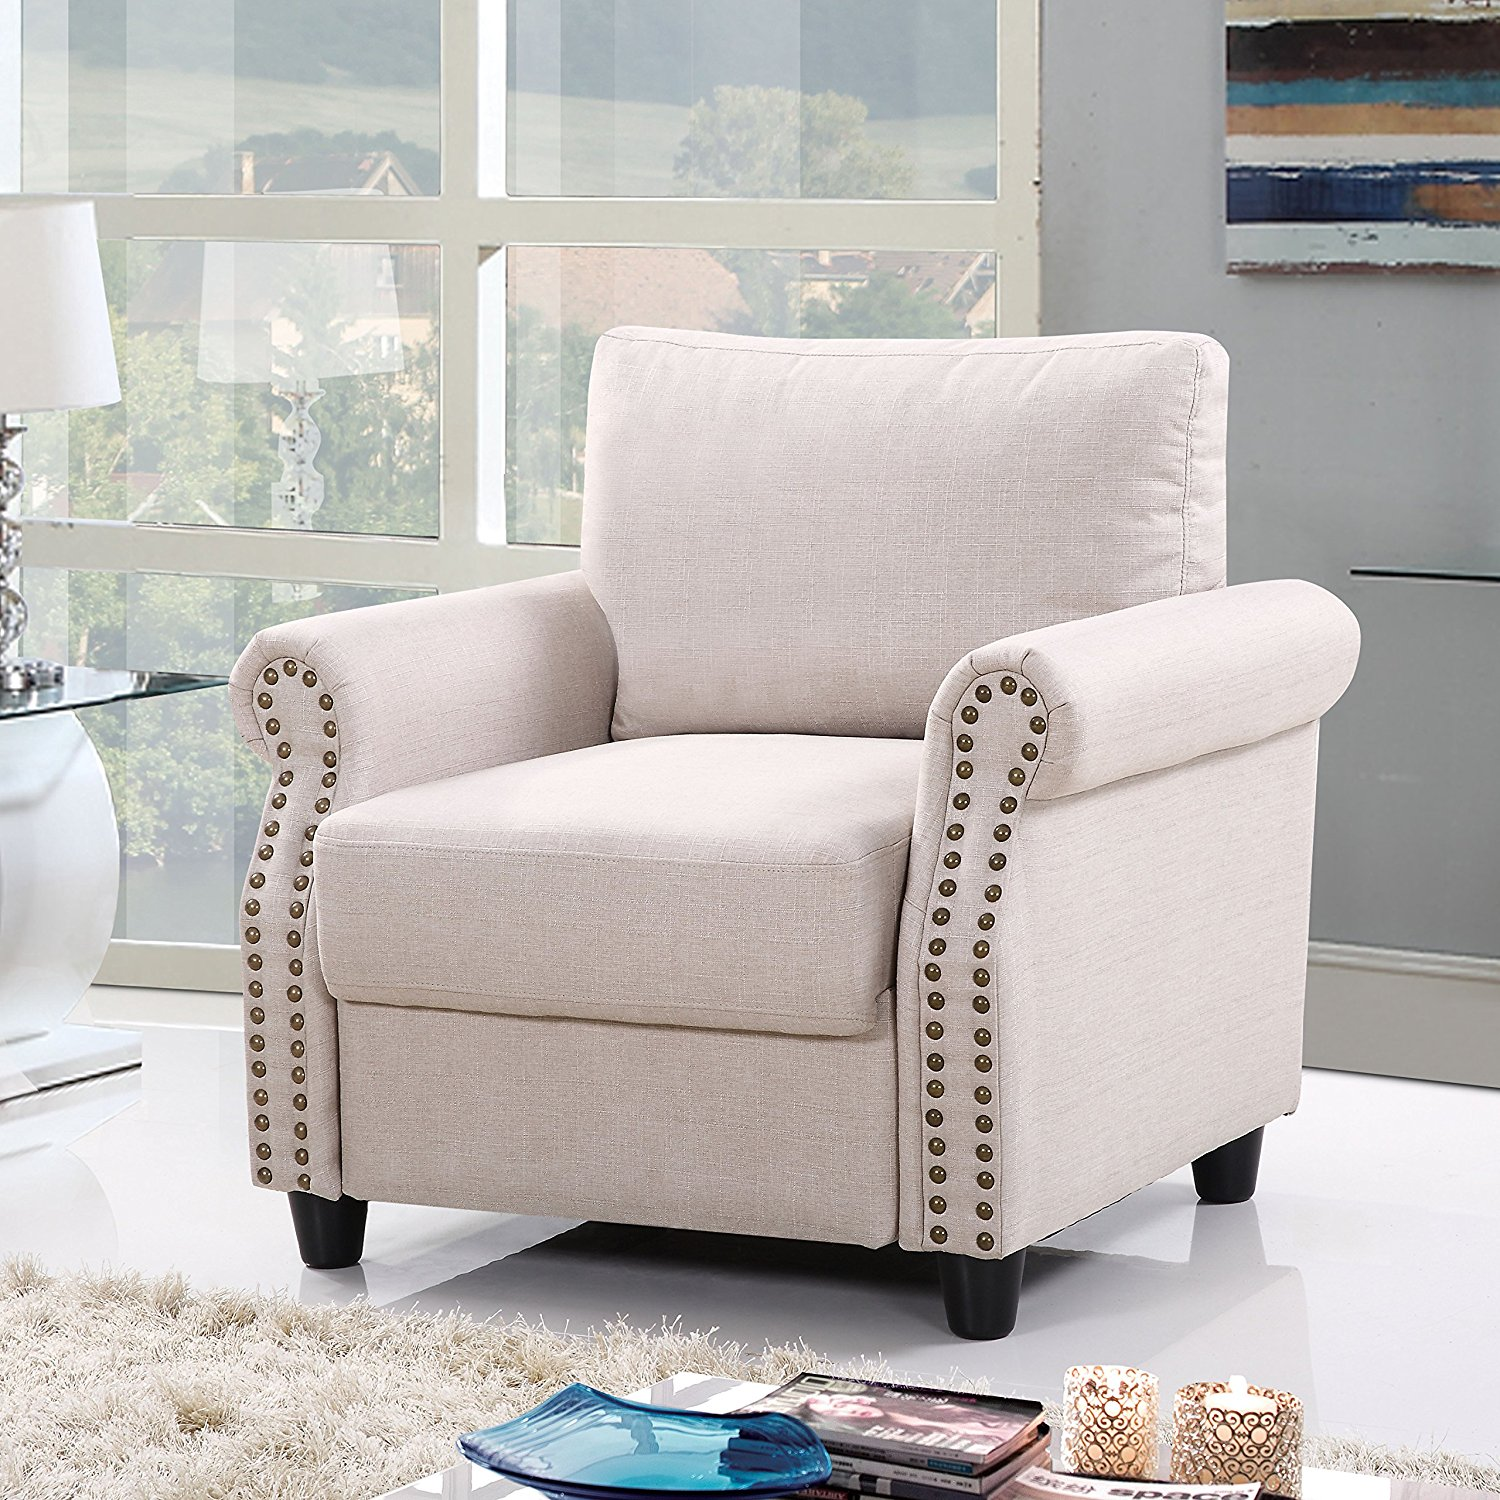 Top 10 Best Living Room Chairs in 2017